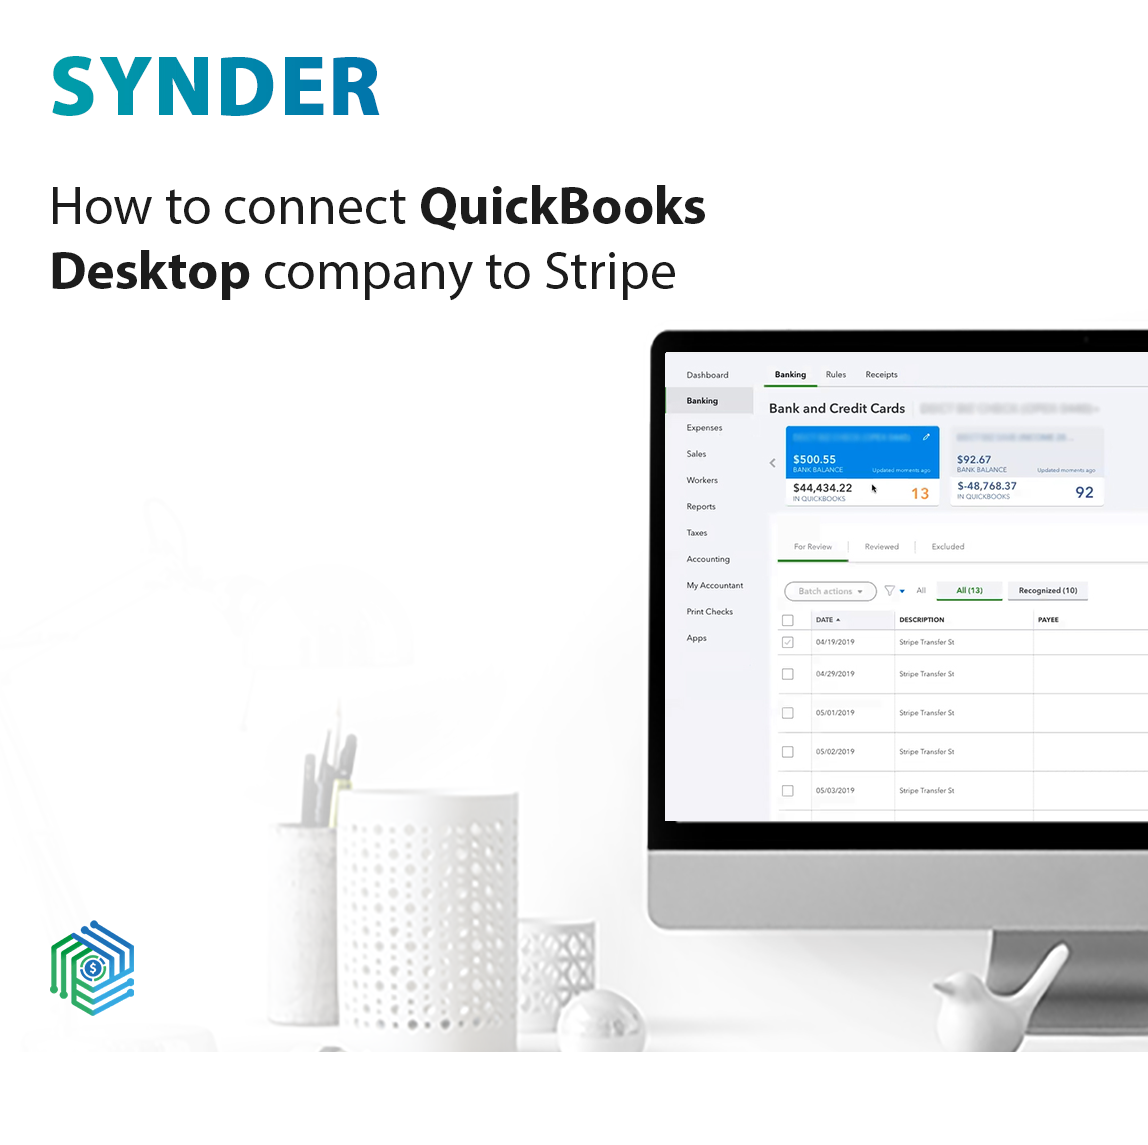 How to connect QuickBooks Desktop company to Stripe